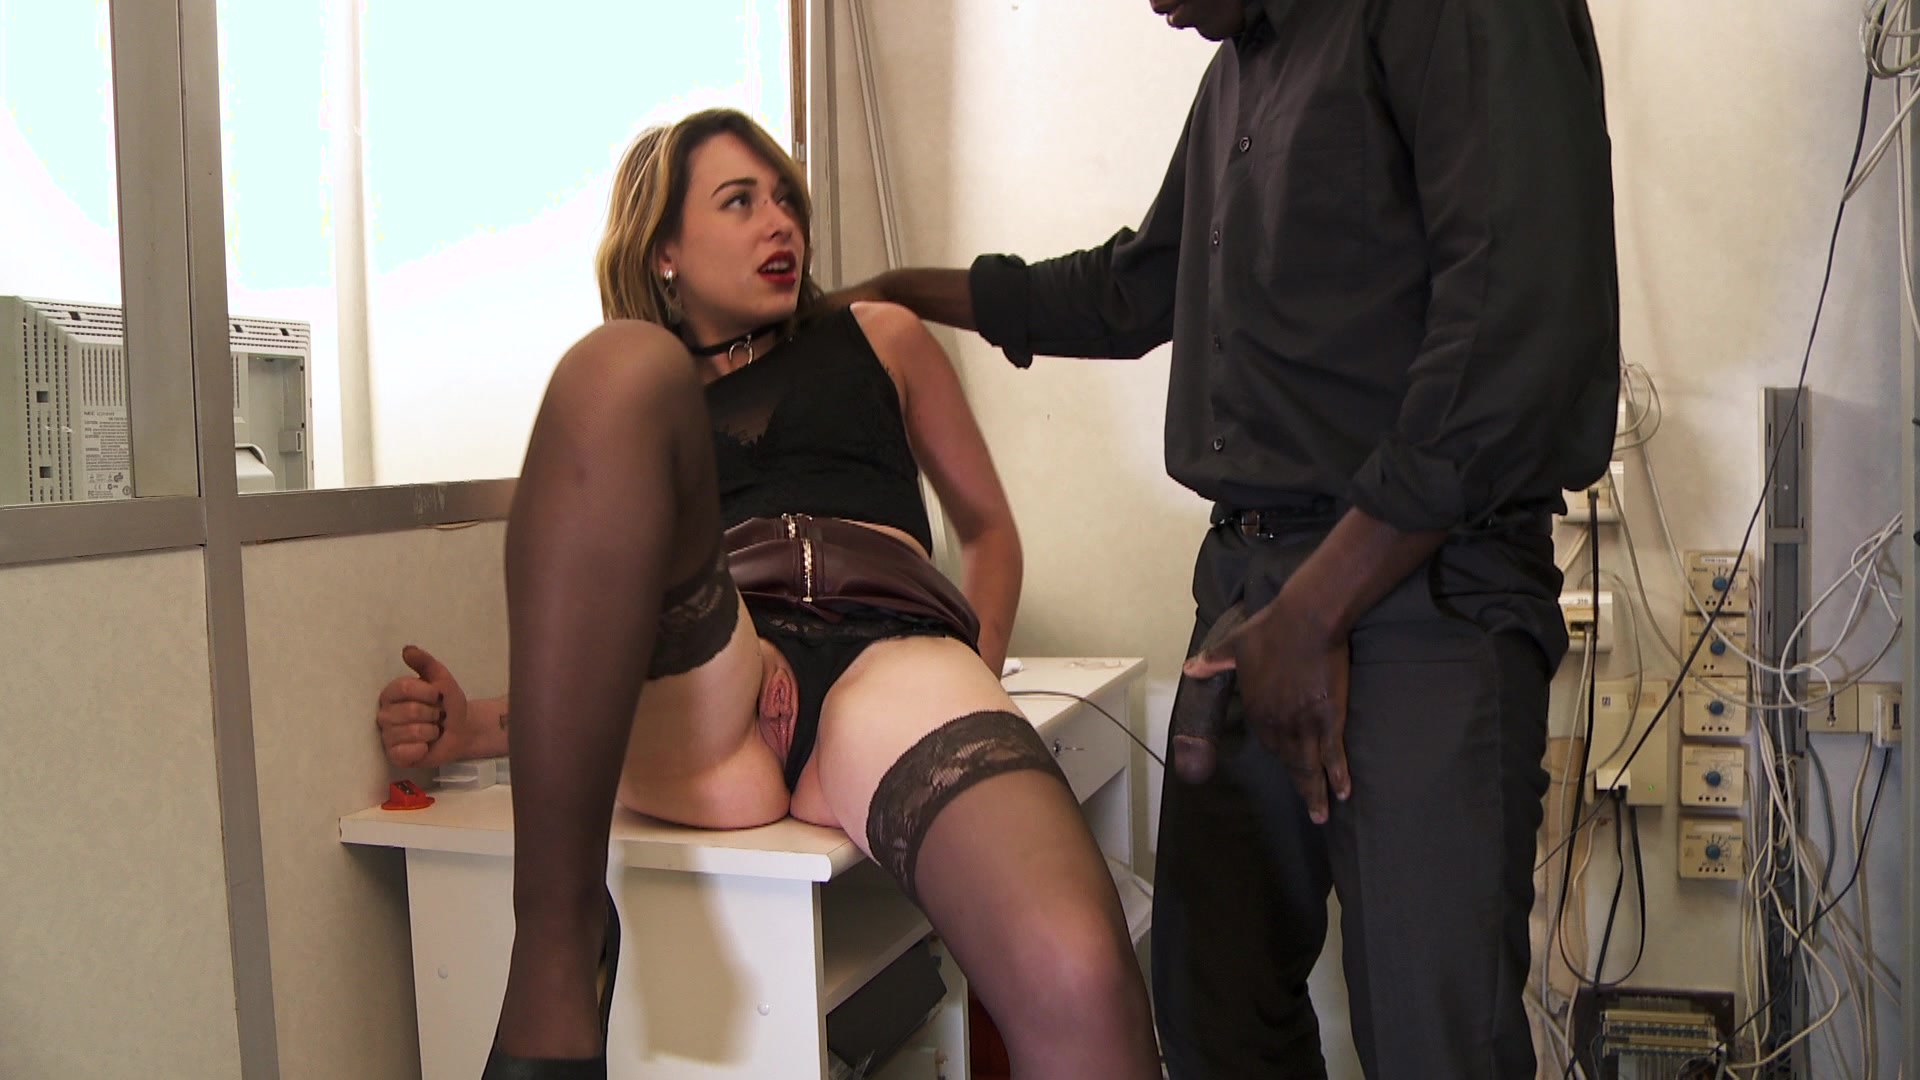 Naughty porn free download-5216